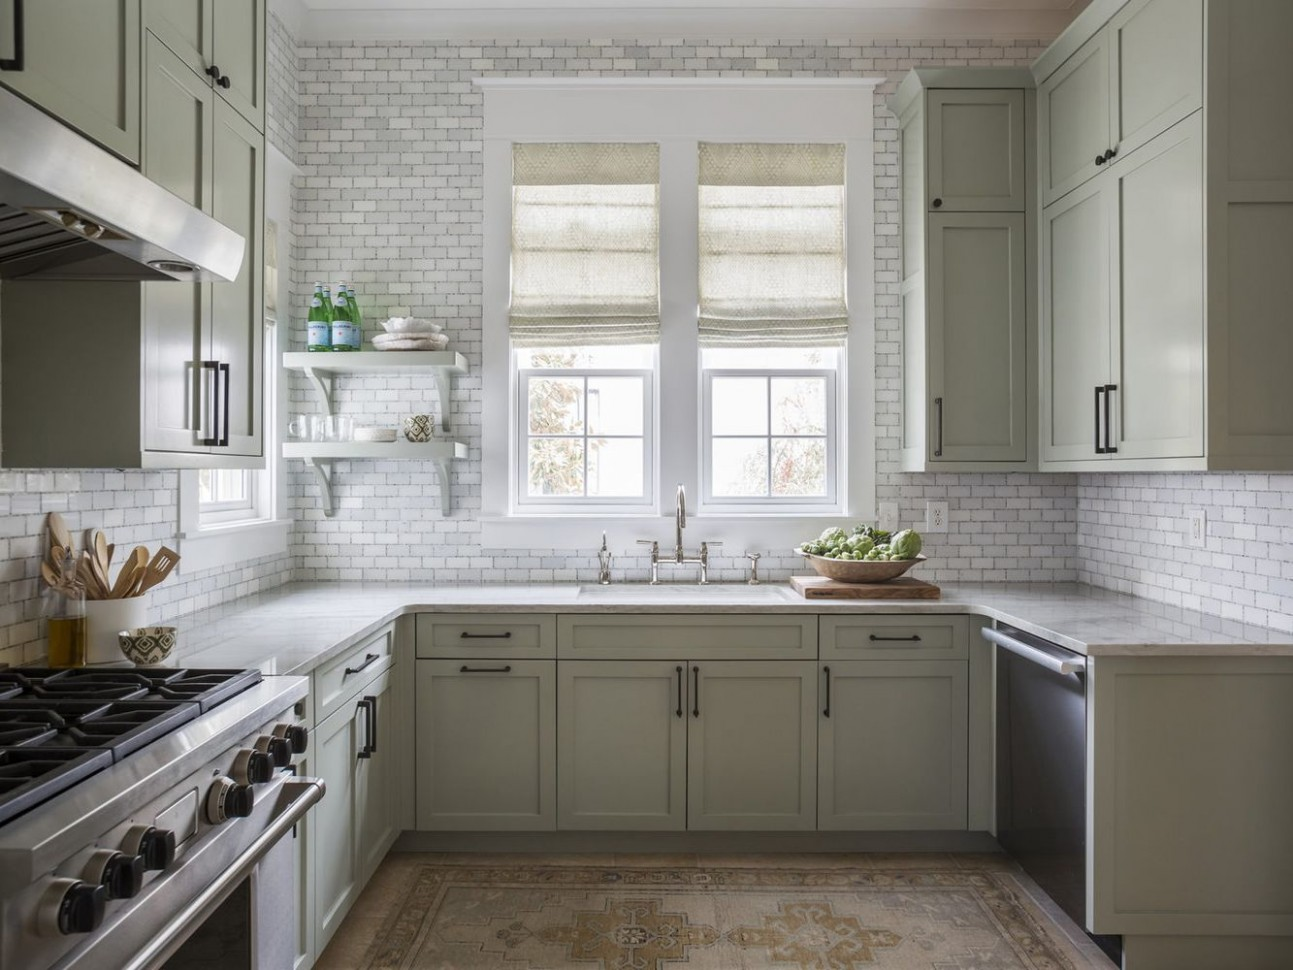 10 Beautiful Open Kitchen Shelving Ideas - Replace Just One Wall Of Kitchen Cabinets